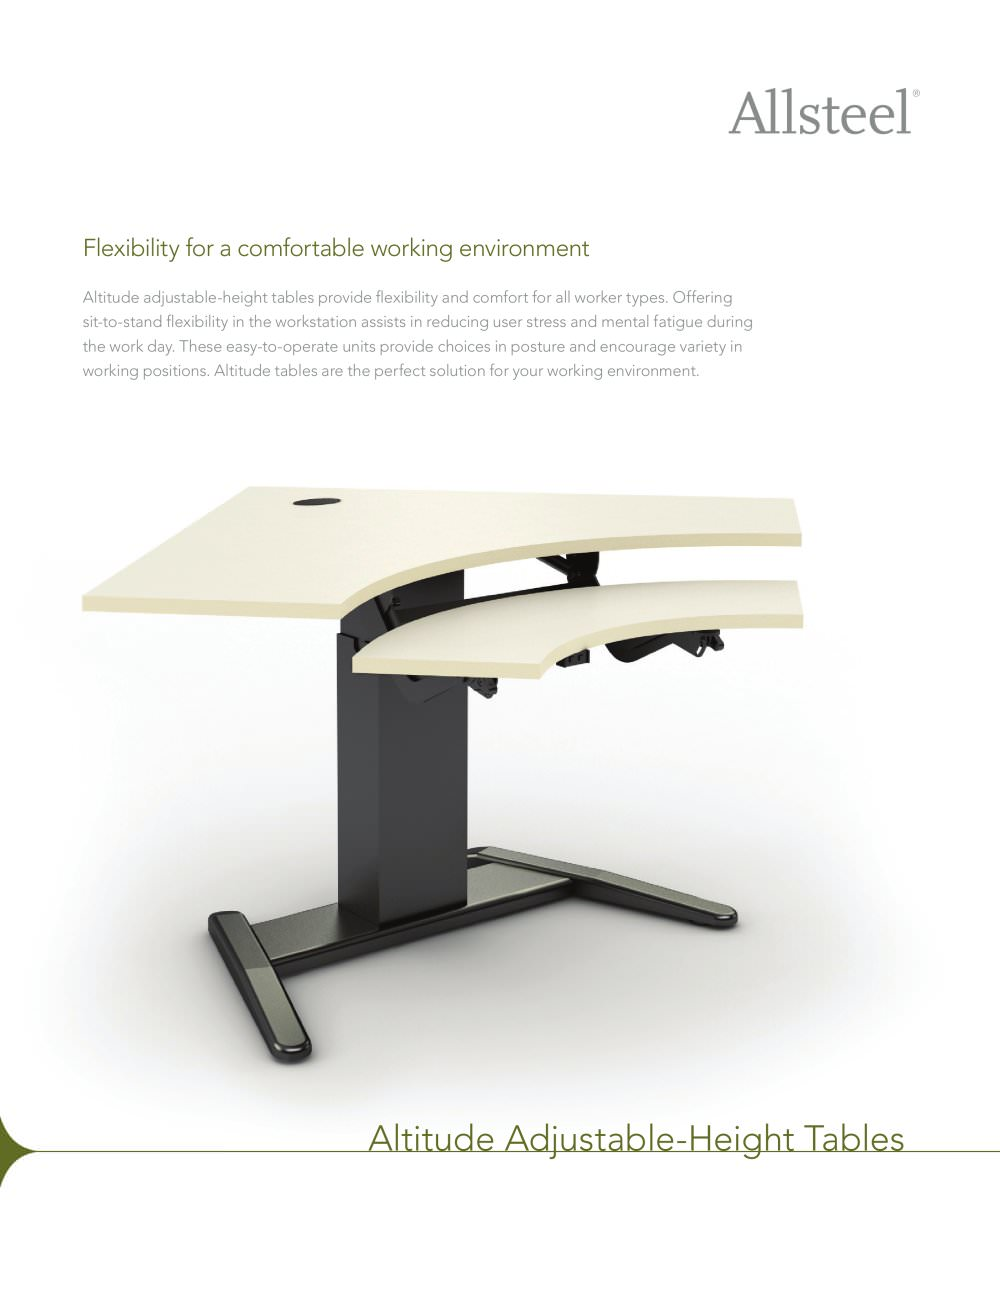 Altitude Adjustable Height Tables Sell Sheet   1 / 2 Pages